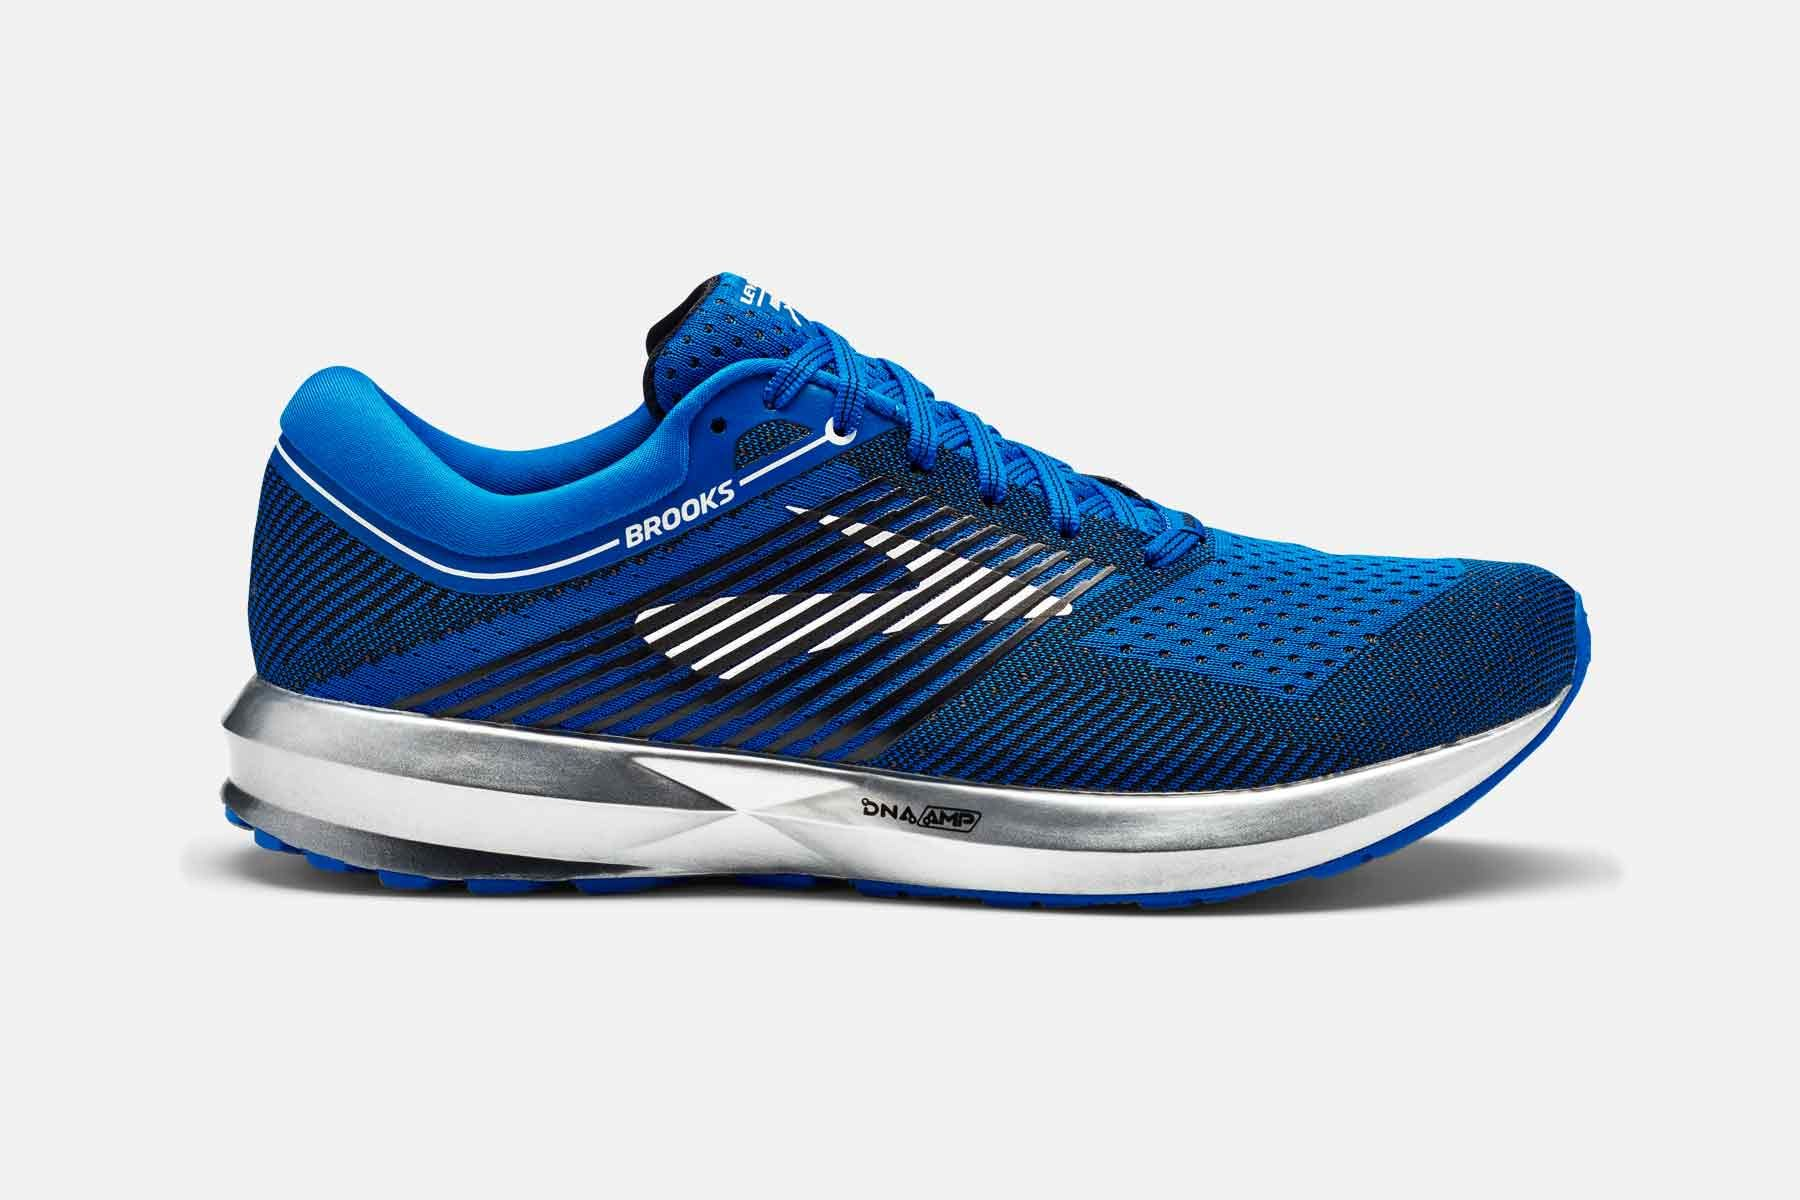 Brooks Levitate in Blau